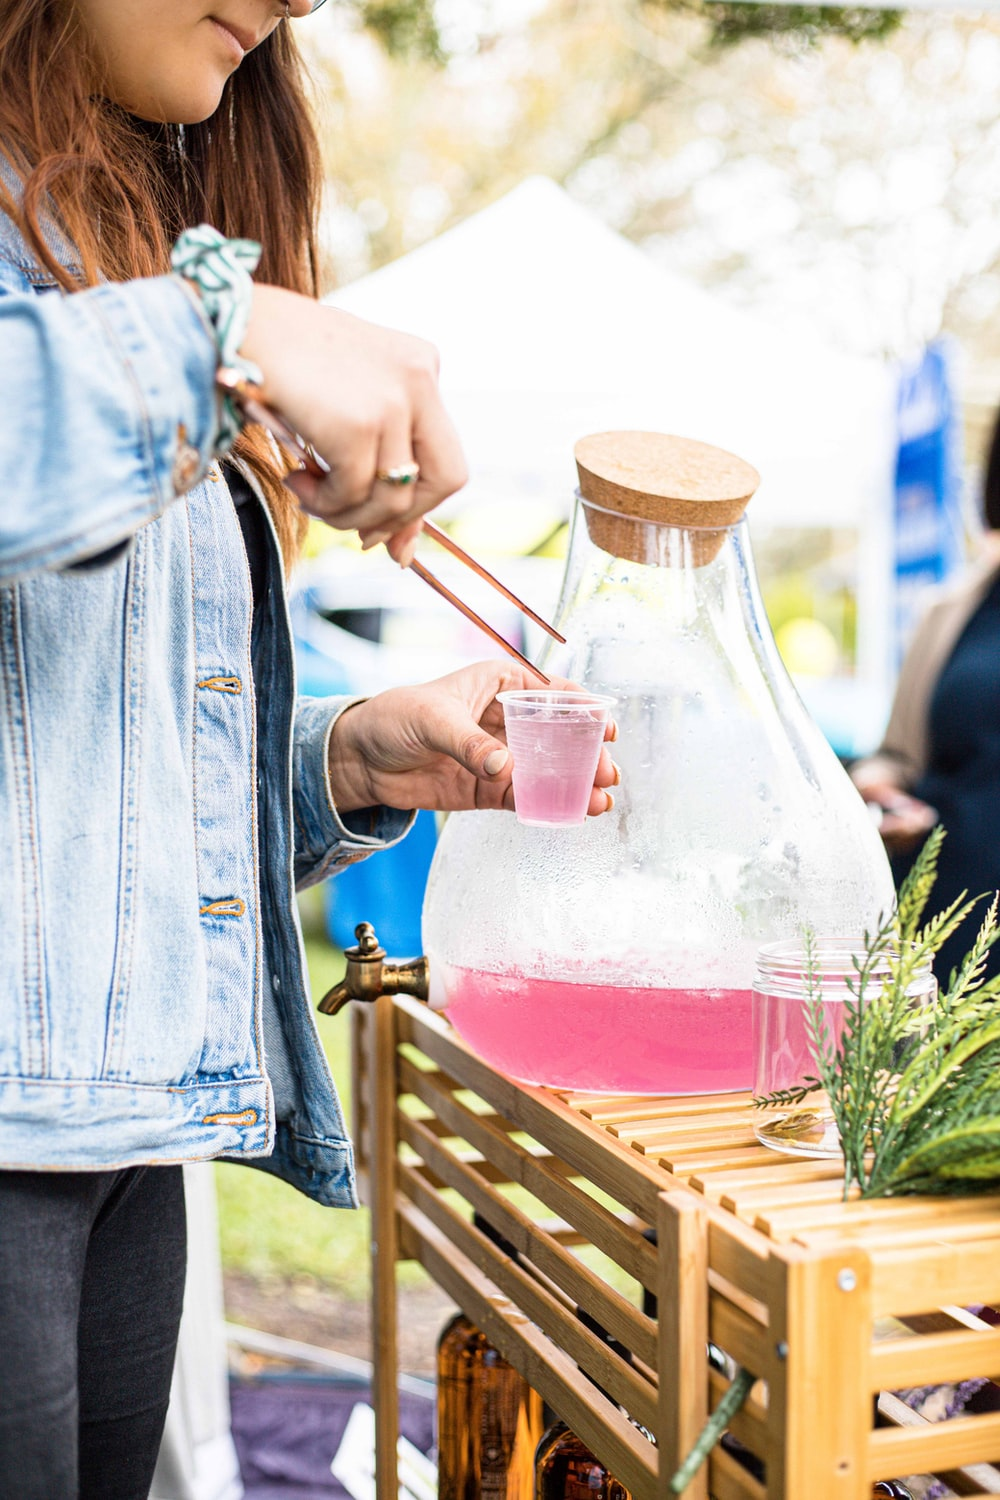 person in blue denim jacket holding clear glass pitcher with red liquid